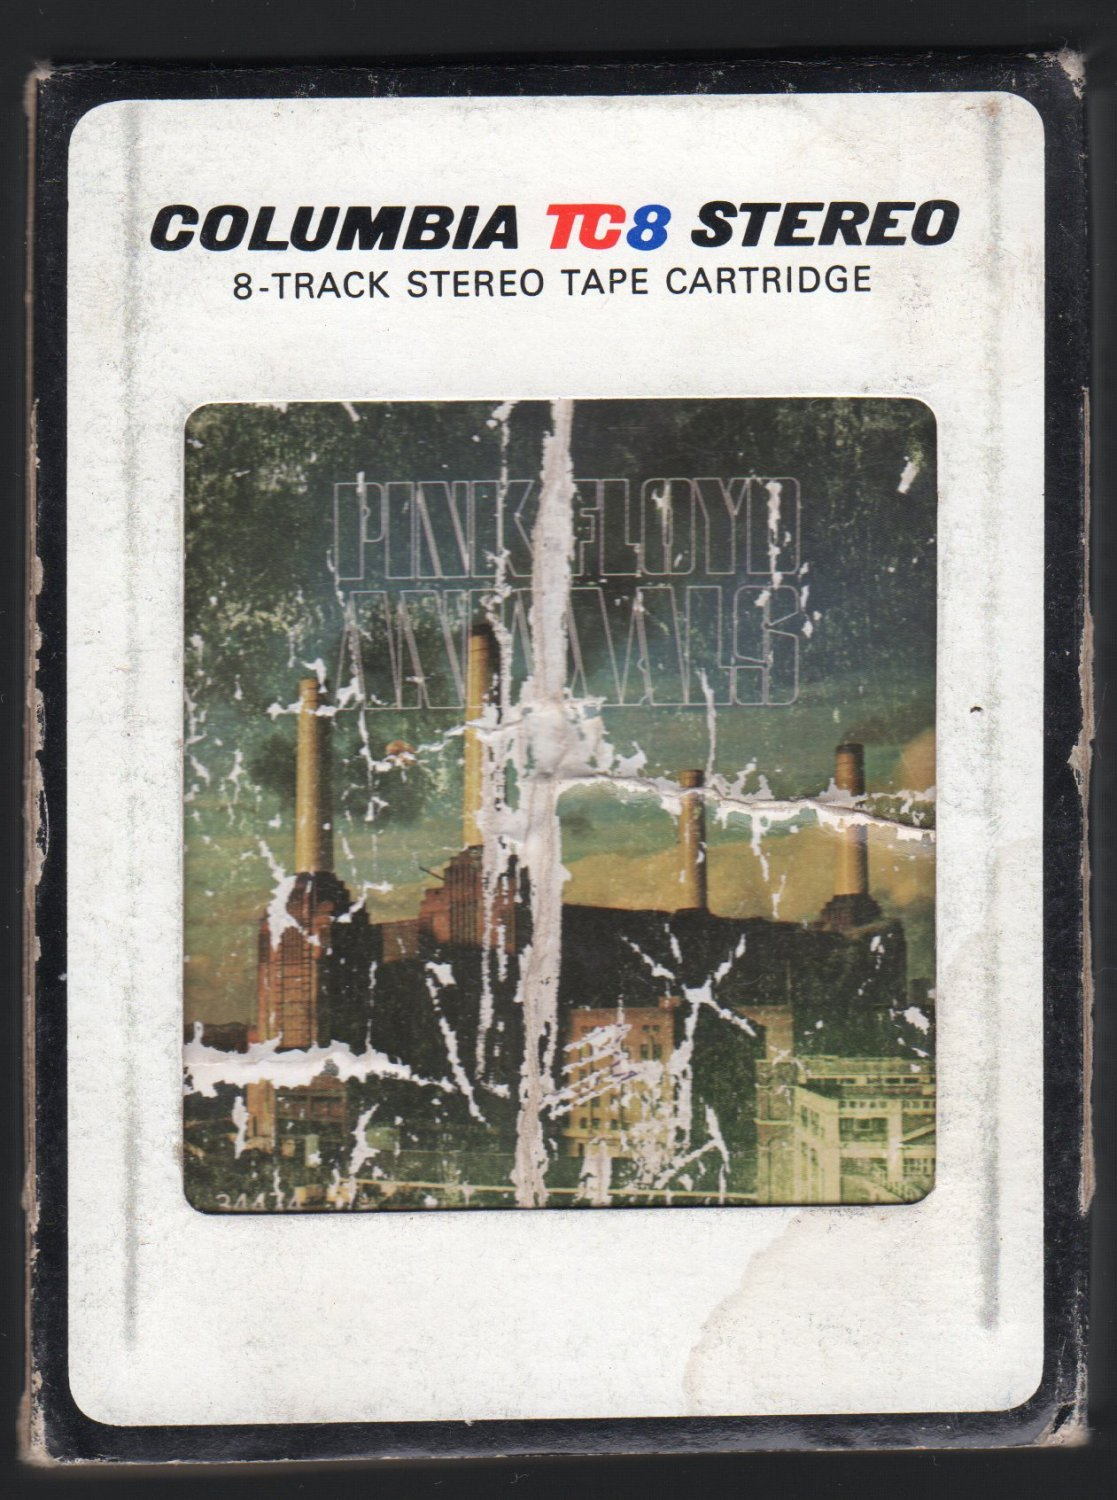 Pink Floyd - Animals 1977 CBS A26 8-TRACK TAPE